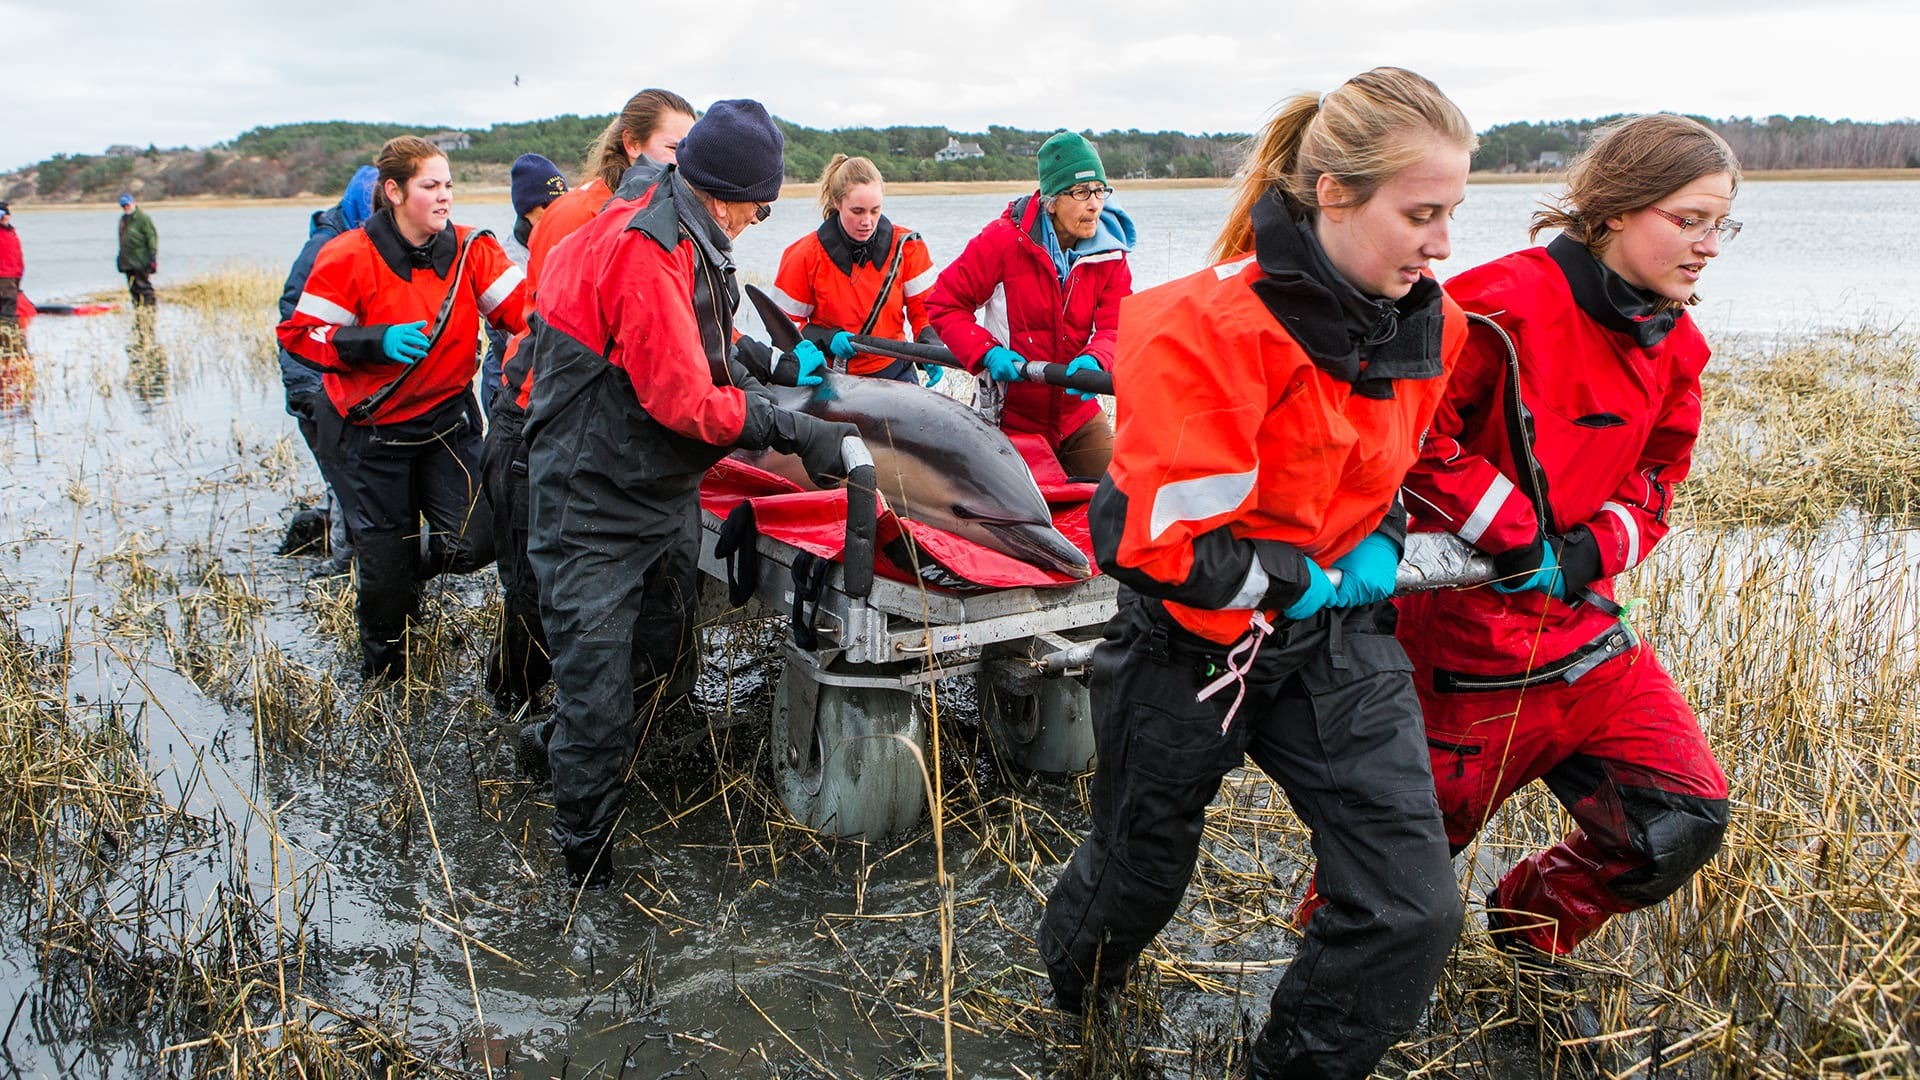 IFAW's Marine Mammal Rescue Team and volunteers respond to a  stranding of four common dolphins on Scussett Beach, Cape Cod in 2018- their 5000th response since the beginning of the Cape Cod Stranding Network. (Photo courtesy of © IFAW)